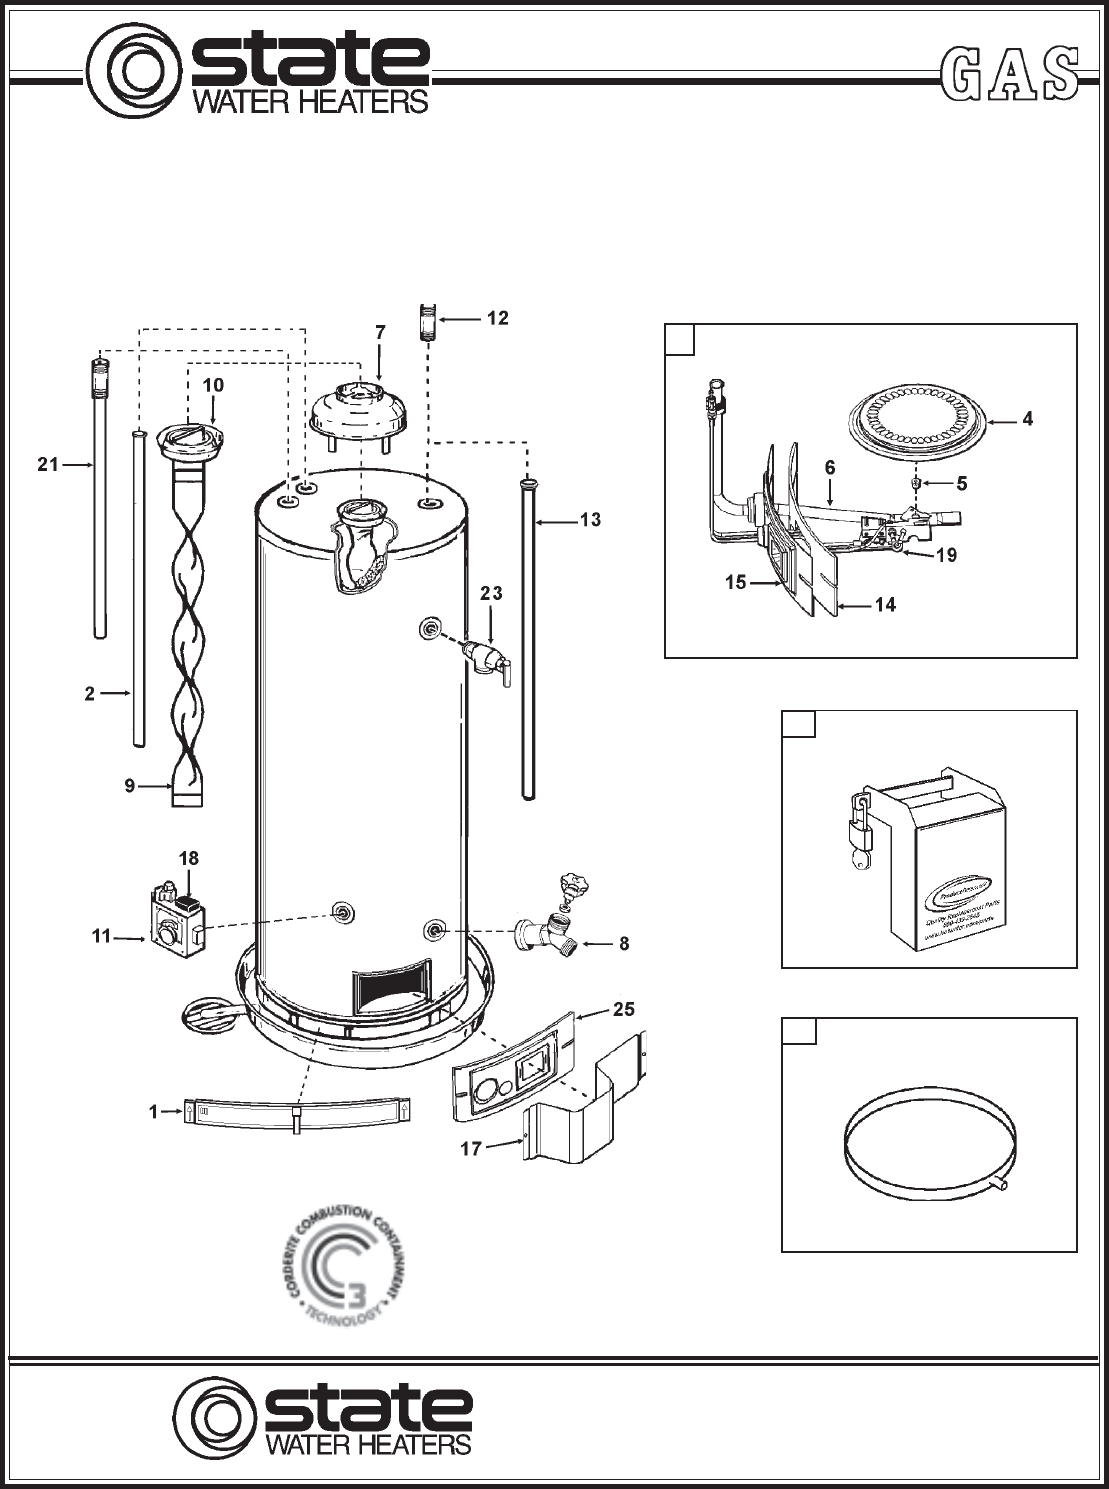 State industries 40 users manual select gs6 gsx 30 50 naeca part state industries 40 users manual select gs6 gsx 30 50 naeca part list 0904p65 ccuart Image collections